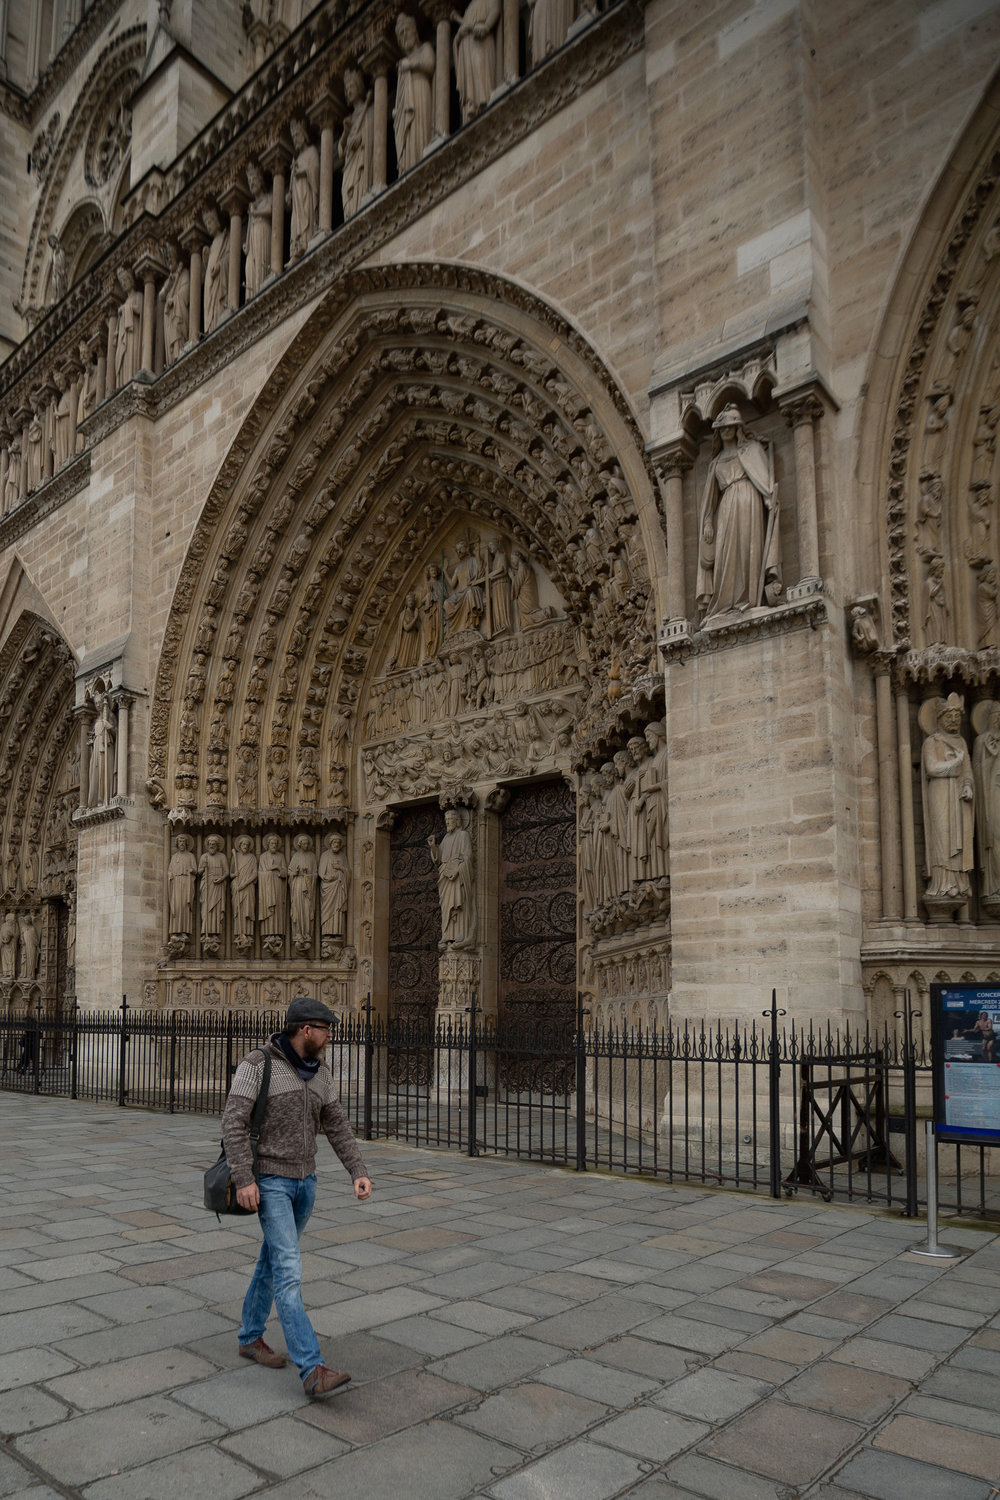 A man admires the cathedral's famed carvings that tower over the doorways of Notre Dame.